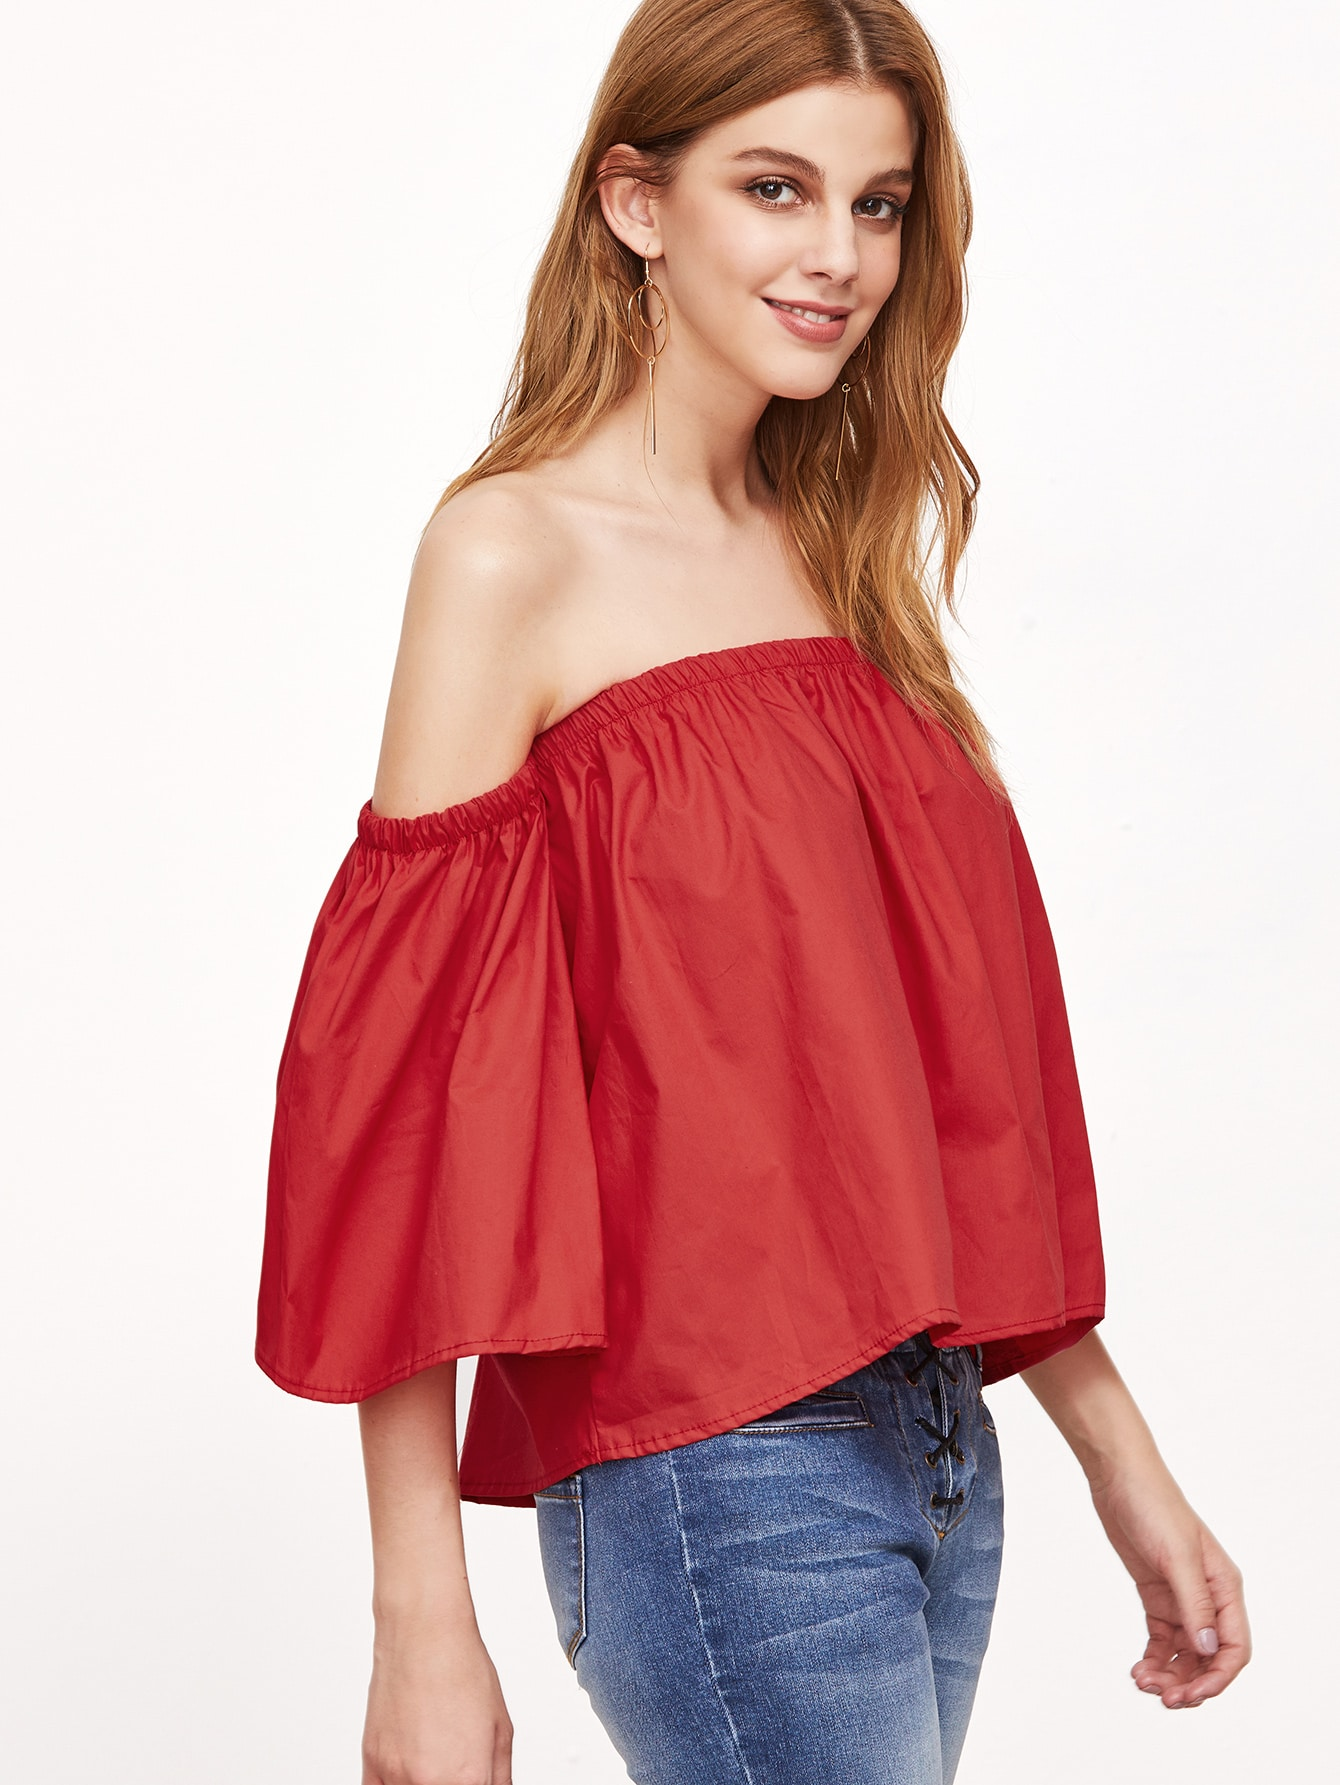 Red Off The Shoulder Crop Top blouse161011493